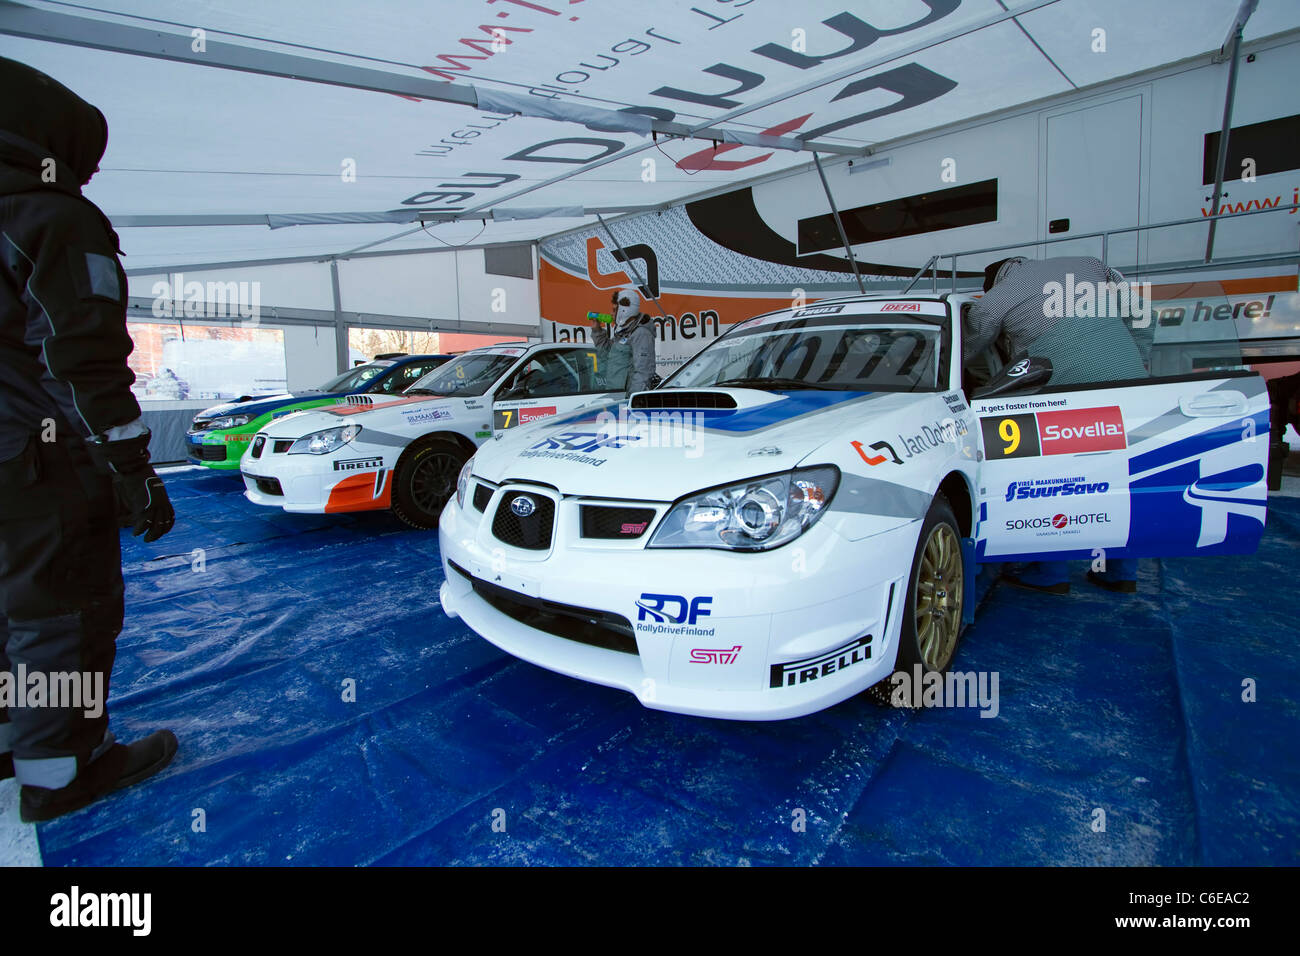 Driver and co-driver making final checkups before the rally - Stock Image